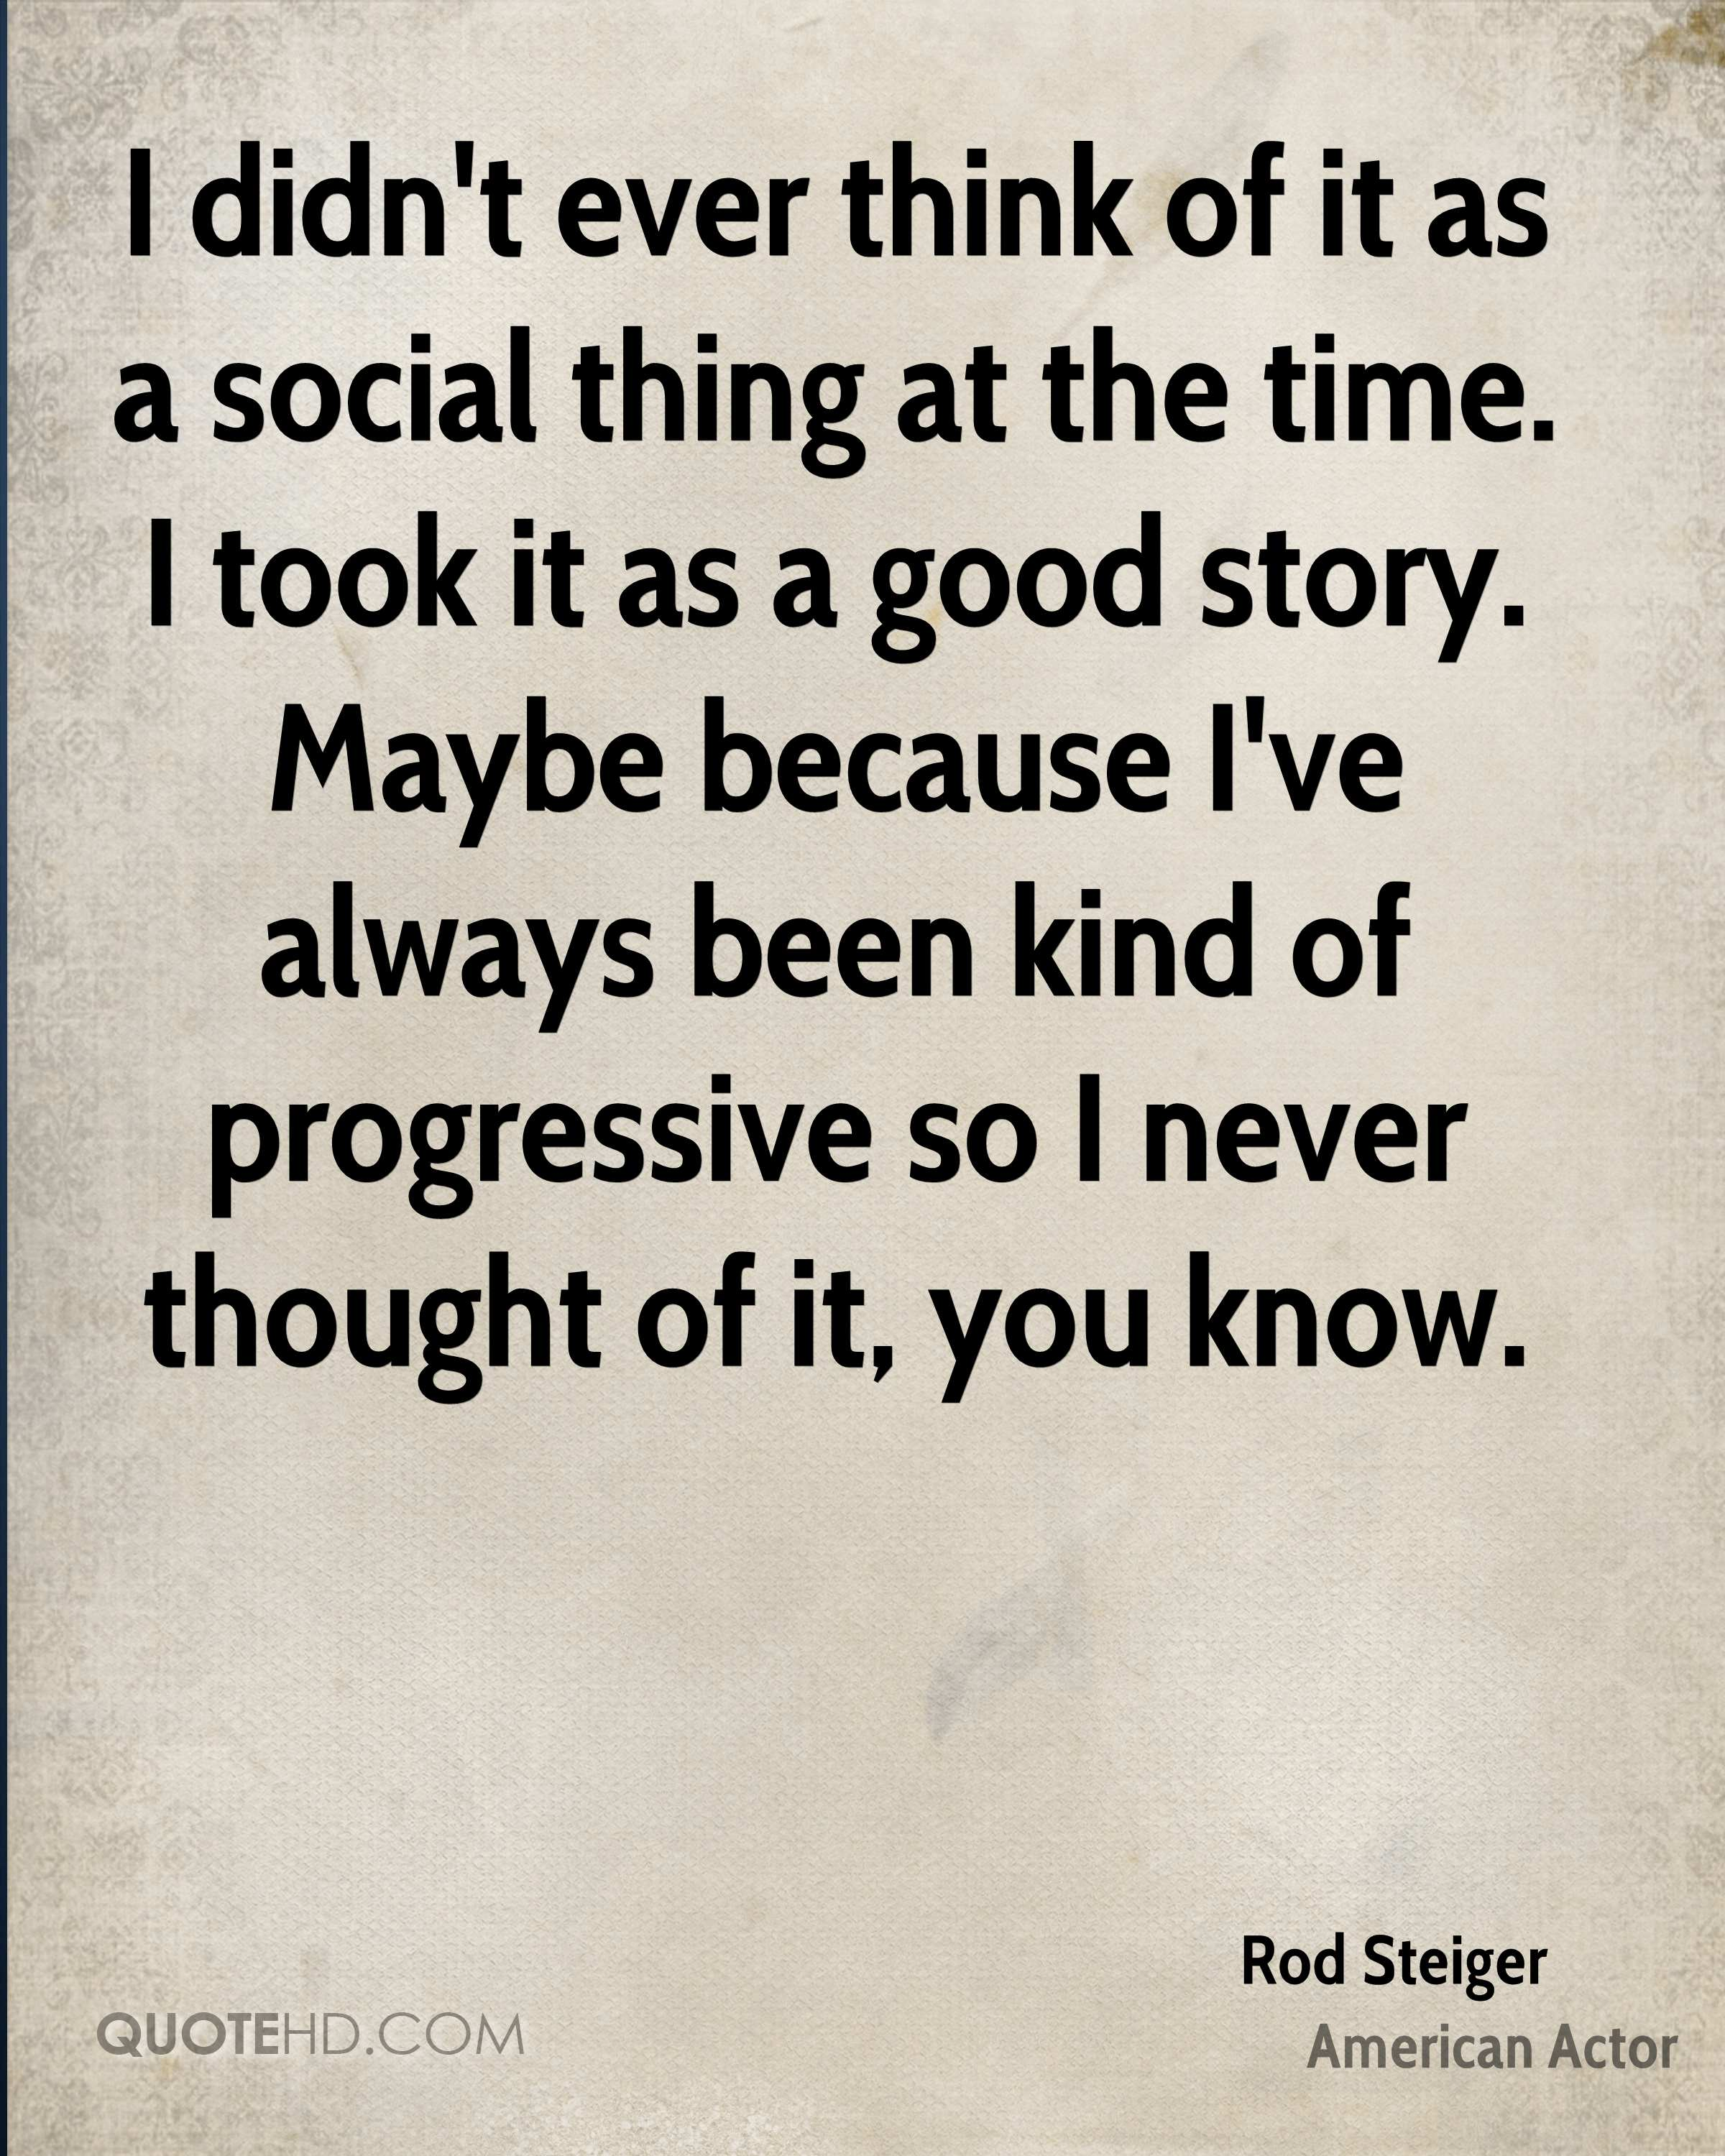 I didn't ever think of it as a social thing at the time. I took it as a good story. Maybe because I've always been kind of progressive so I never thought of it, you know.